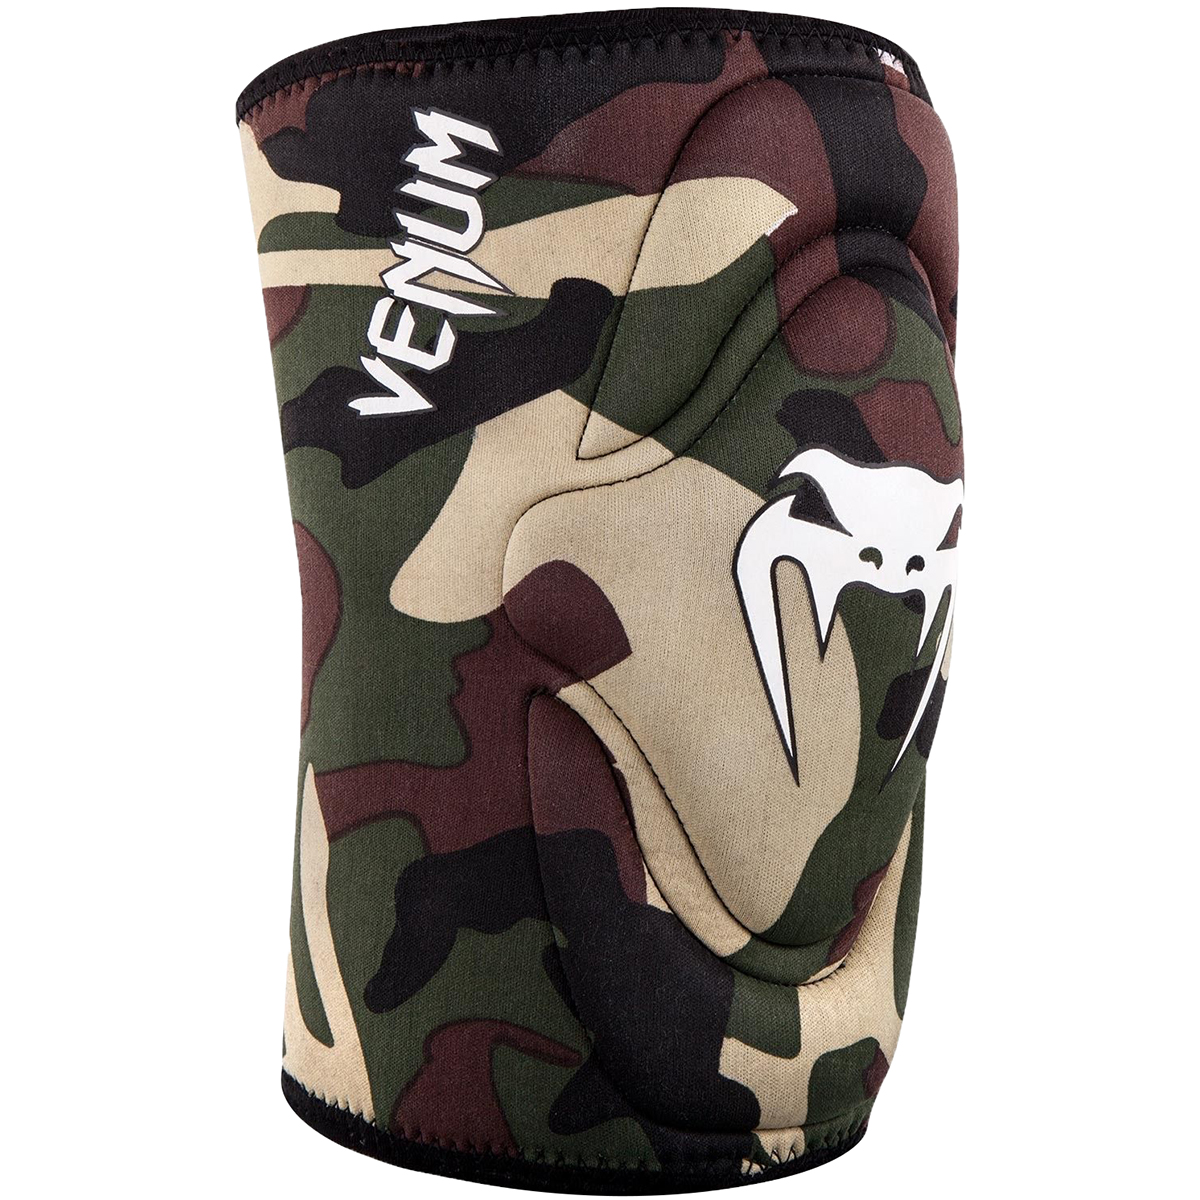 thumbnail 18 - Venum-Kontact-Gel-Shock-System-Protective-MMA-Training-Knee-Pads